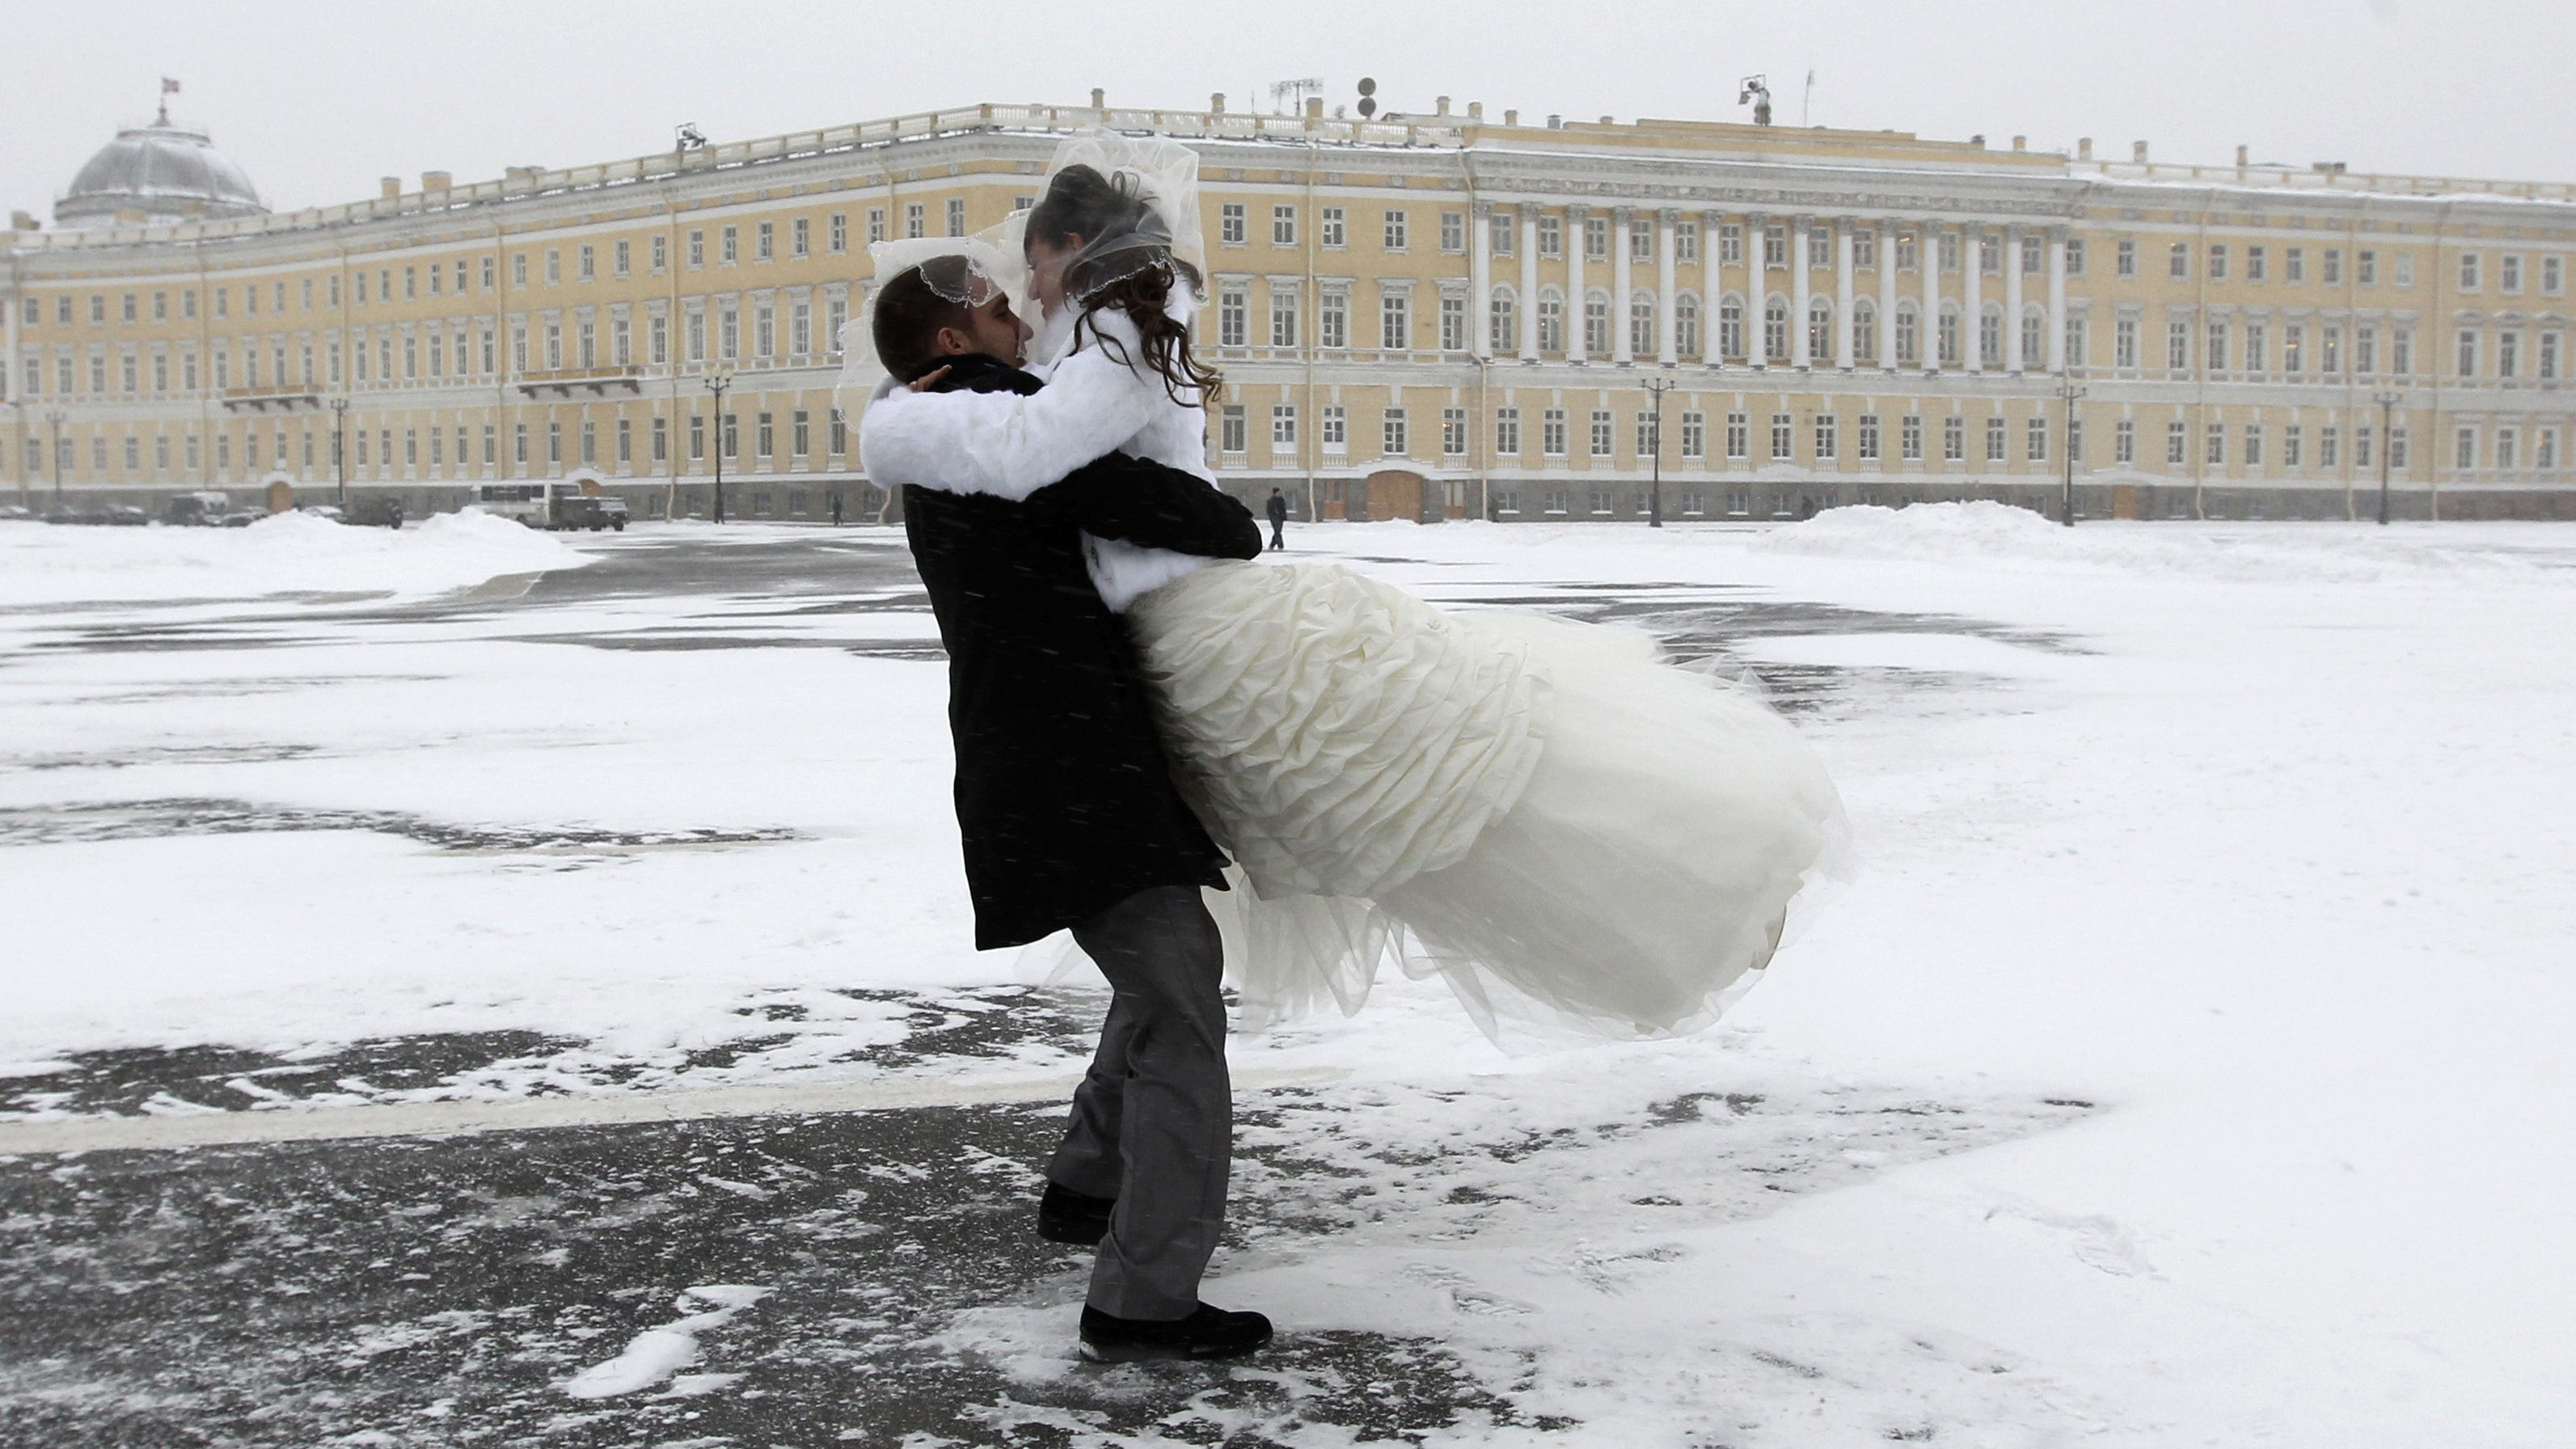 A groom carries his bride as they celebrate their wedding in the snow at Dvortsovaya Square in central St. Petersburg.